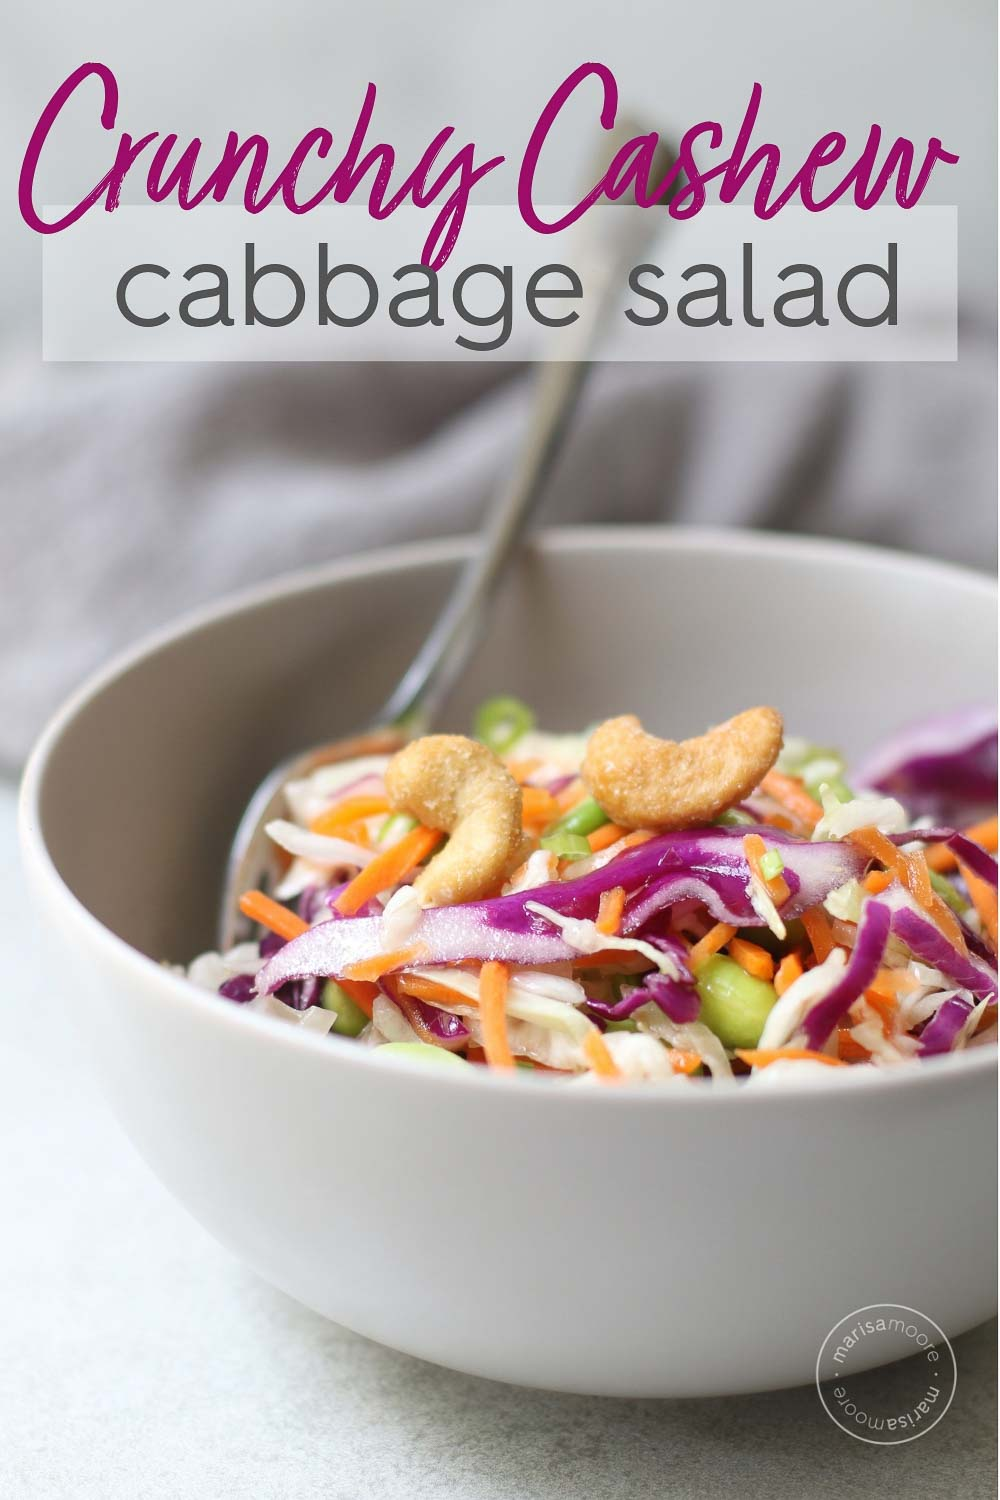 Crunchy Cashew Cabbage Salad in a bowl